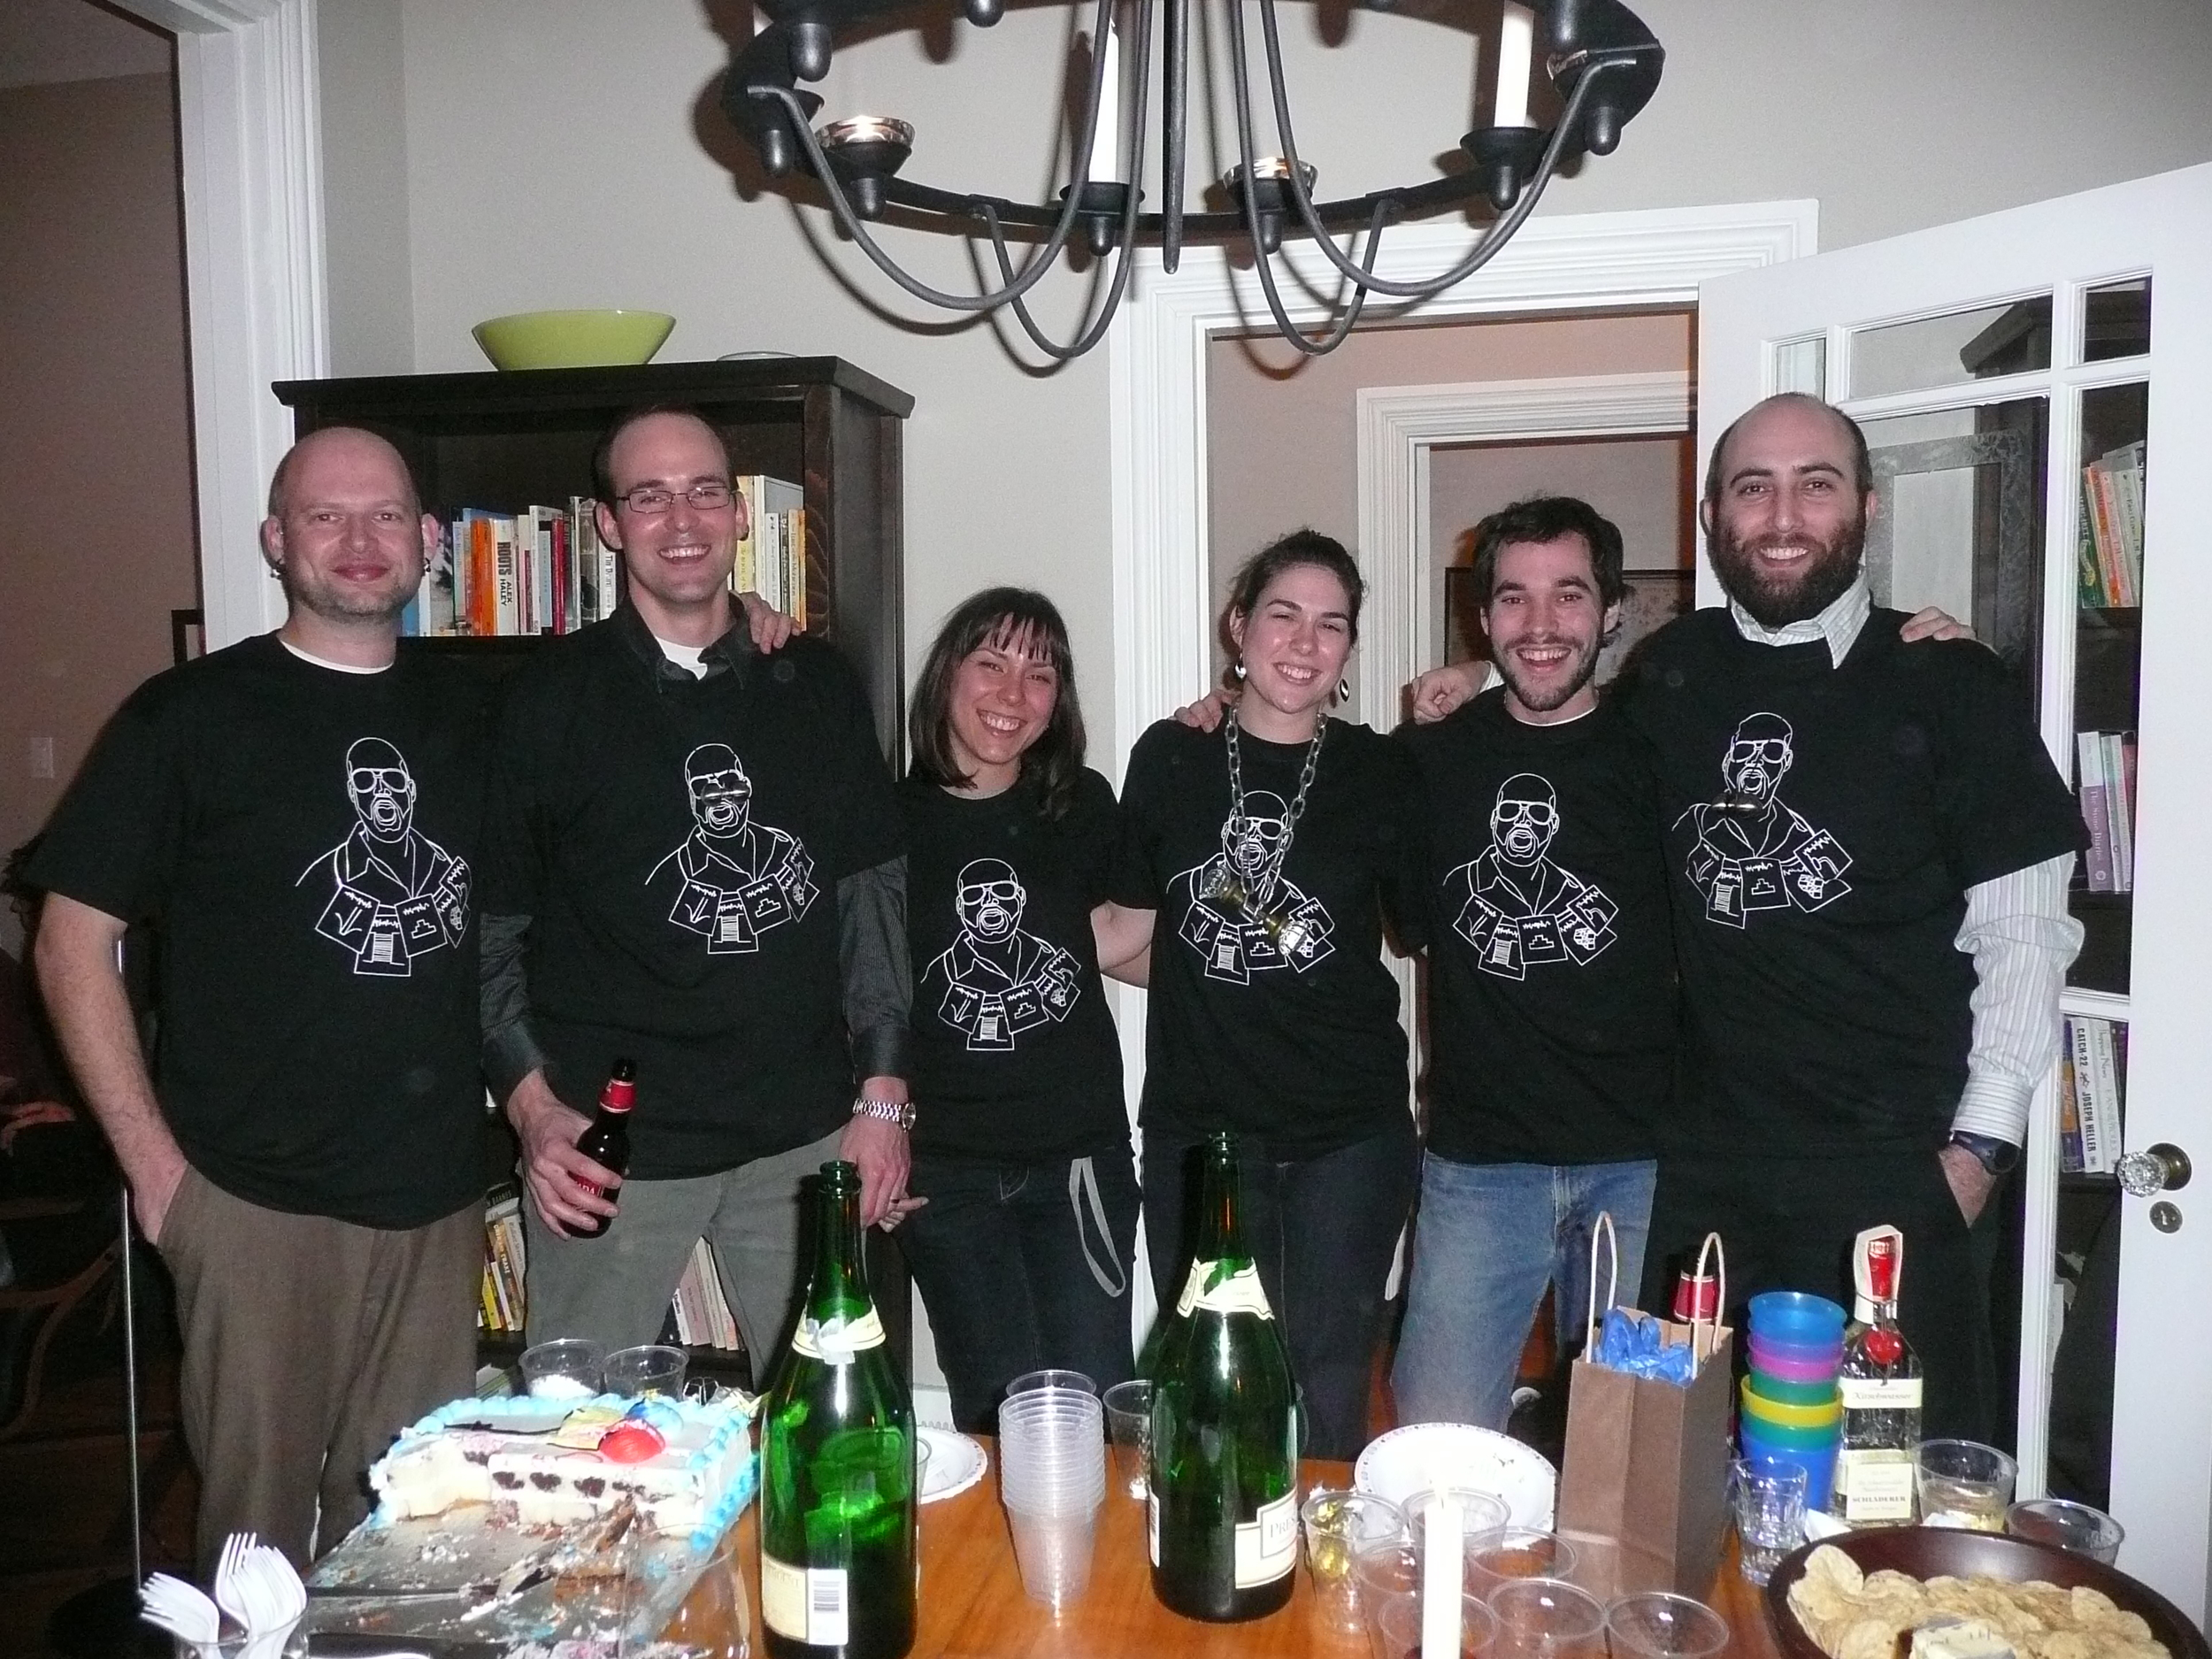 The Group at the PhD defence party wearing T-shirts displaying Kari's shame.